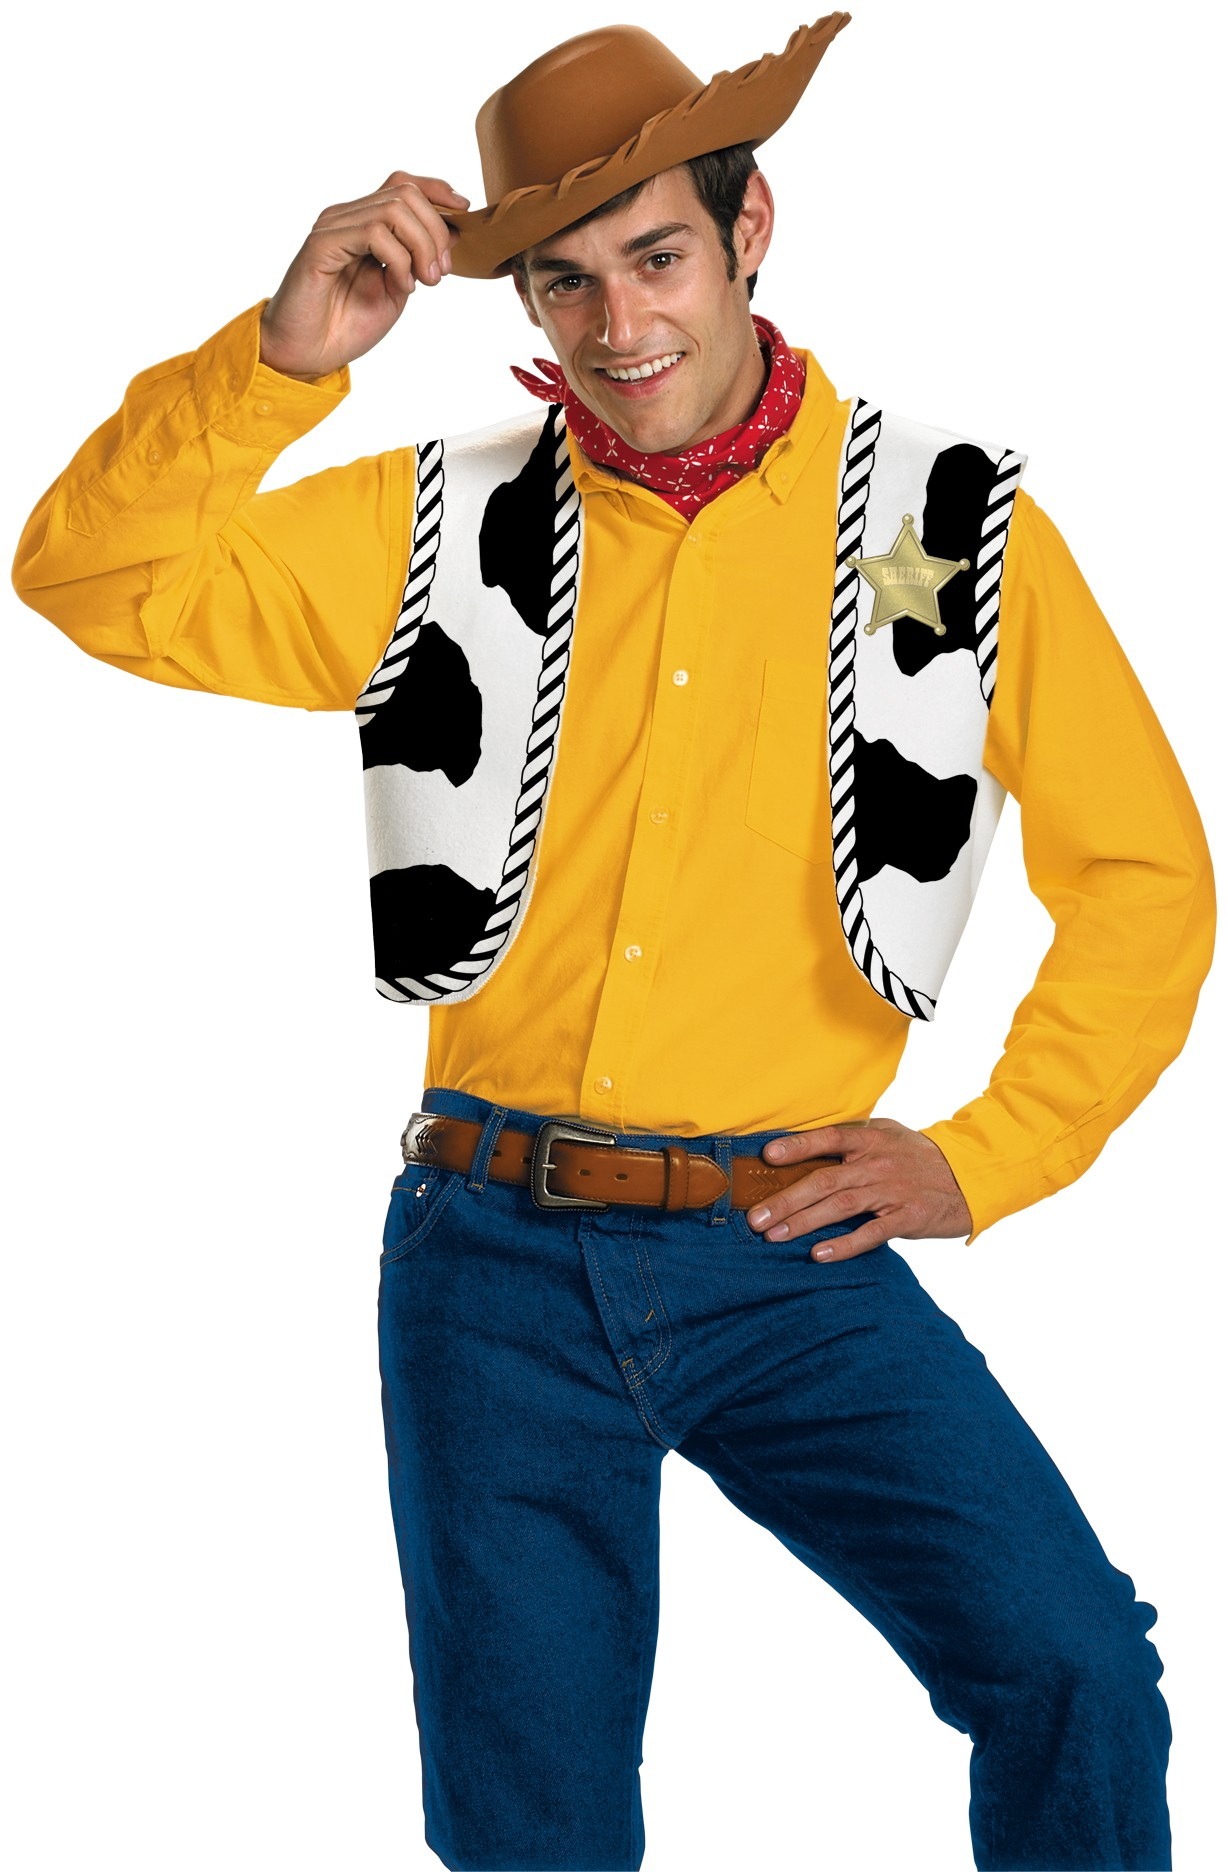 Disney Toy Story - Adult Teen Woody Cowboy Costume Accessory Kit.jpg  sc 1 st  Costumes.com.au & Disney Toy Story - Adult Teen Woody Cowboy Costume Accessory Kit ...